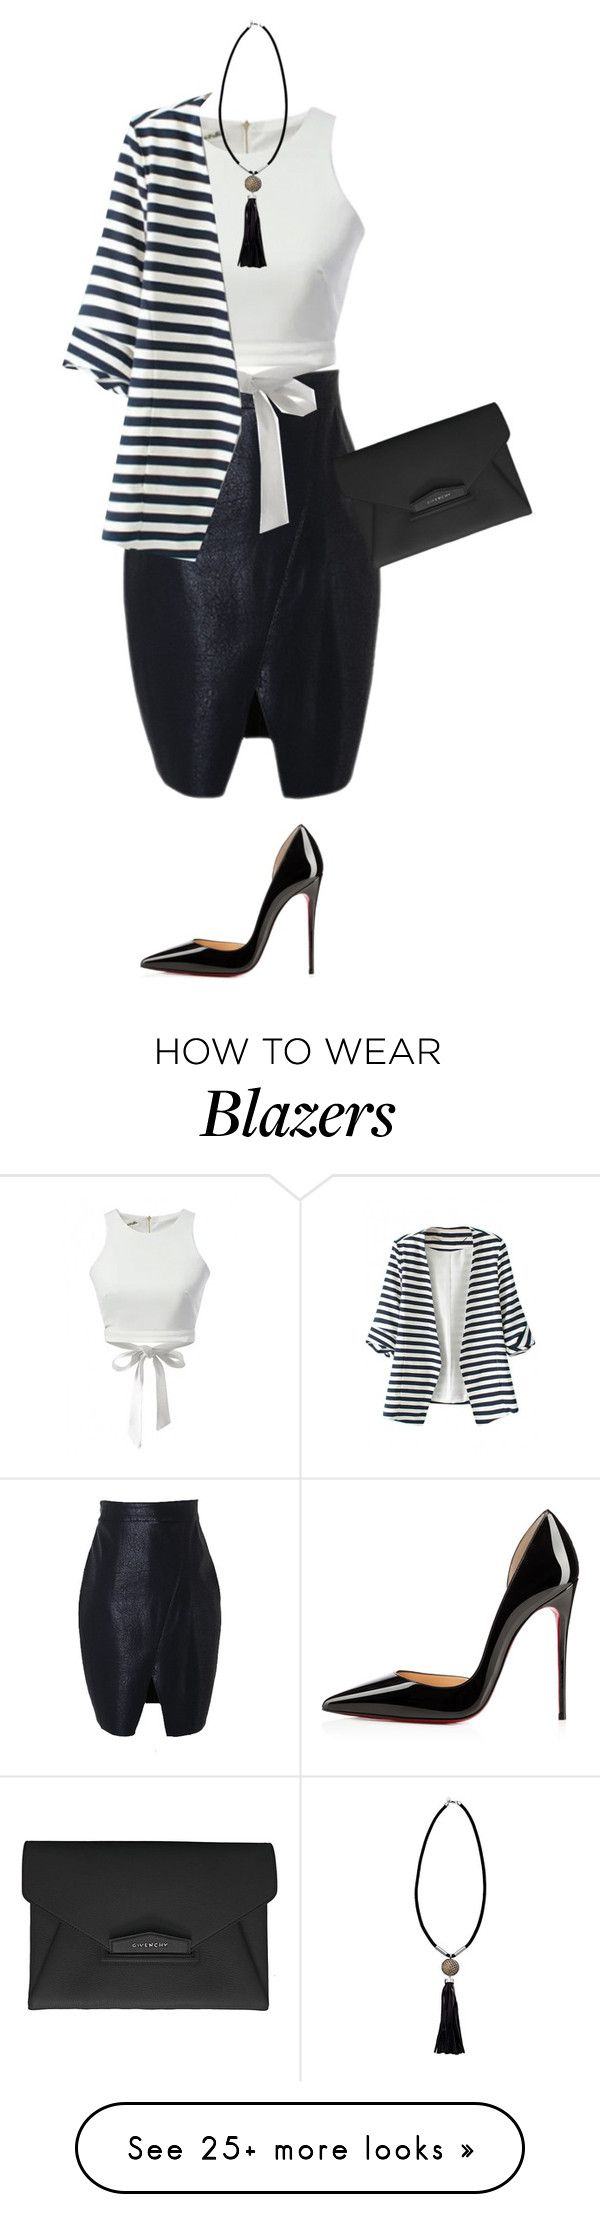 """""""interview"""" by lovemelikeyourlast on Polyvore featuring Givenchy, French Connection, Christian Louboutin, women's clothing, women's fashion, women, female, woman, misses and juniors"""